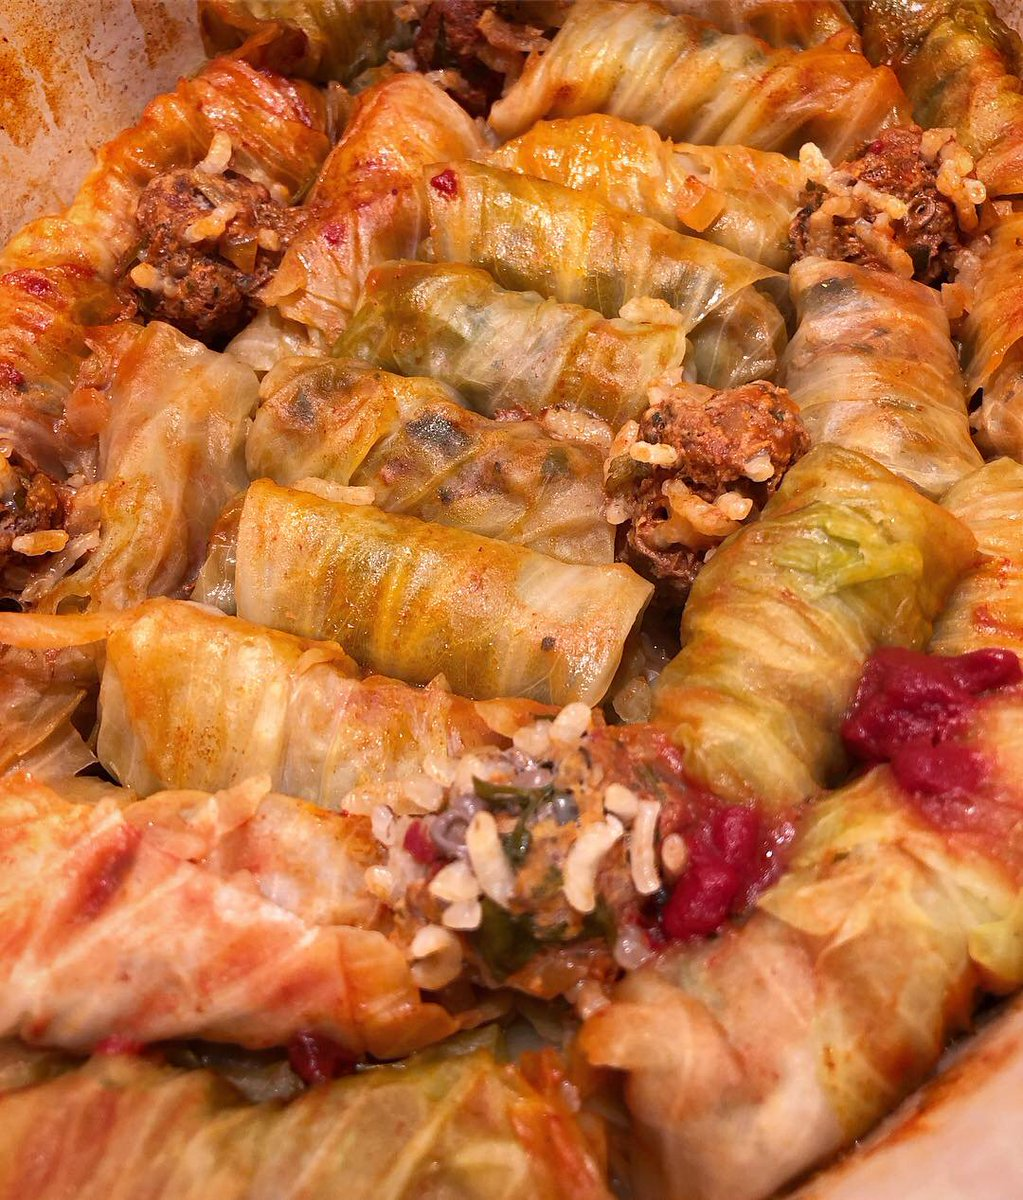 Cabbage rolls definitely good for the soul, thanks @istanbulfood for the inspiration 🙏 ❤️ https://t.co/kZ3CQGYzRf